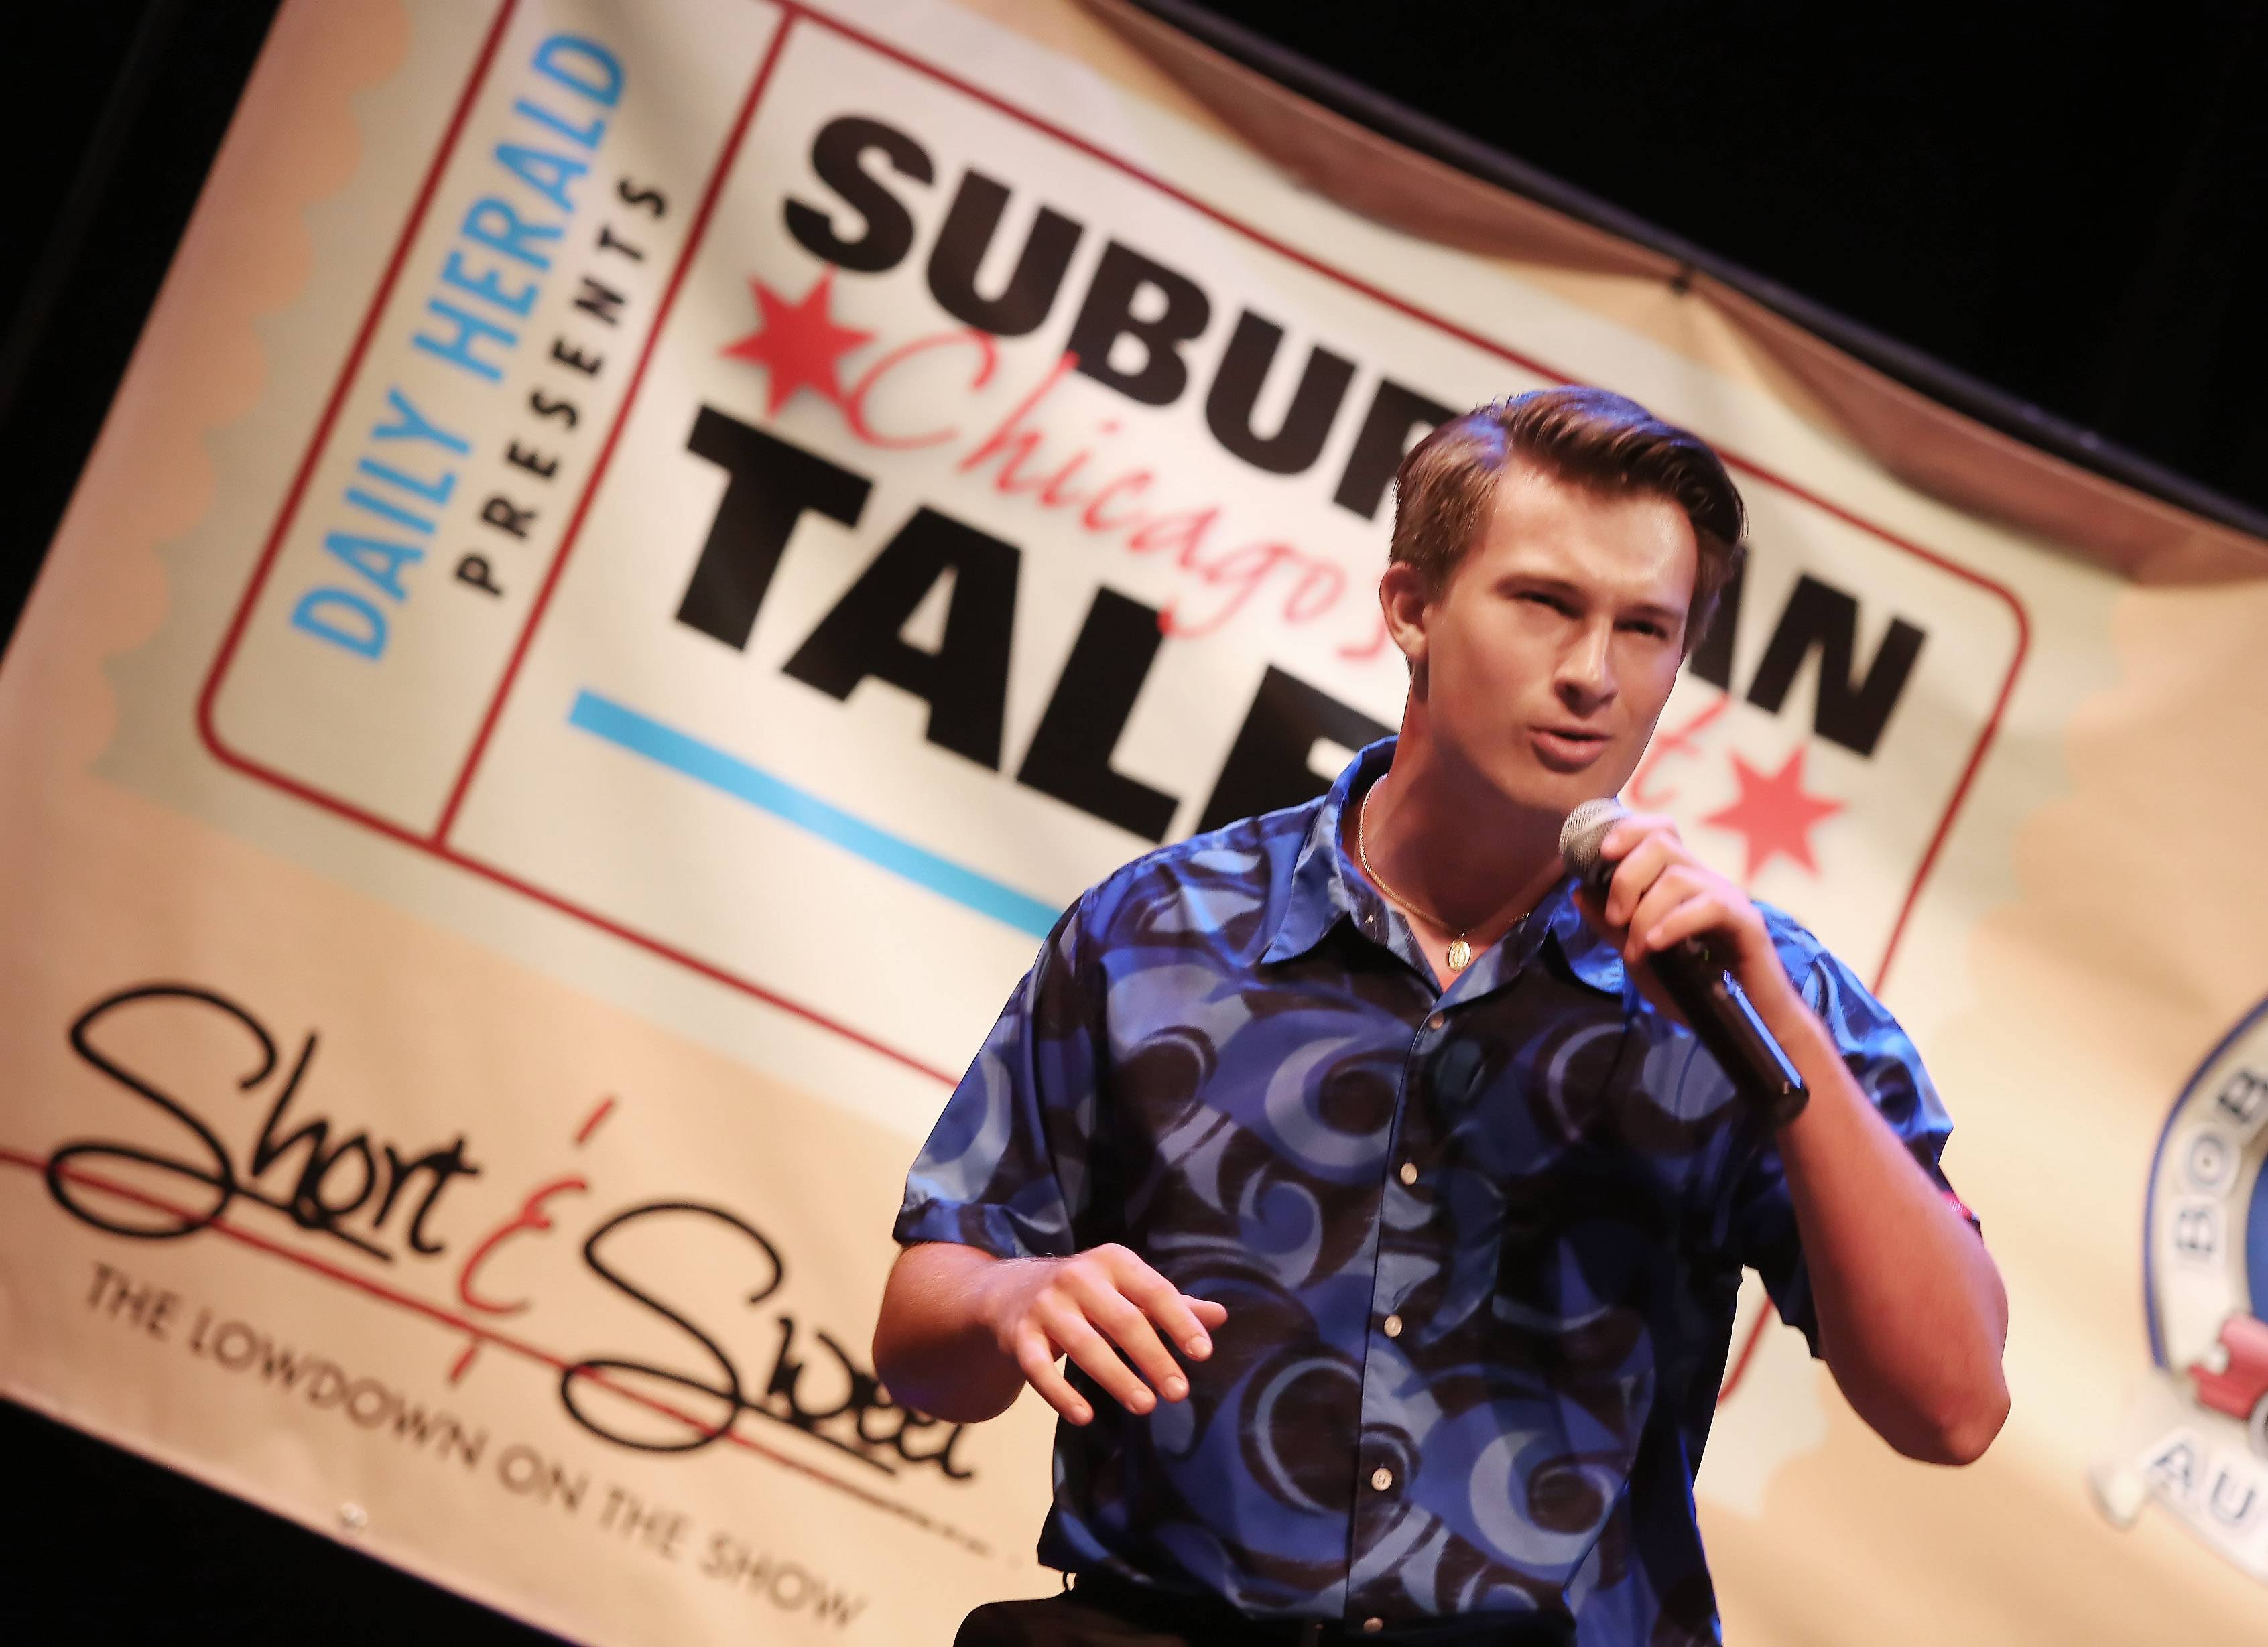 JT Snyder of Barrington sings during Suburban Chicago's Got Talent at the Prairie Center for the Arts in Schaumburg on Sunday. The top 15 finalists performed for judges and the audience as they competed for prizes.